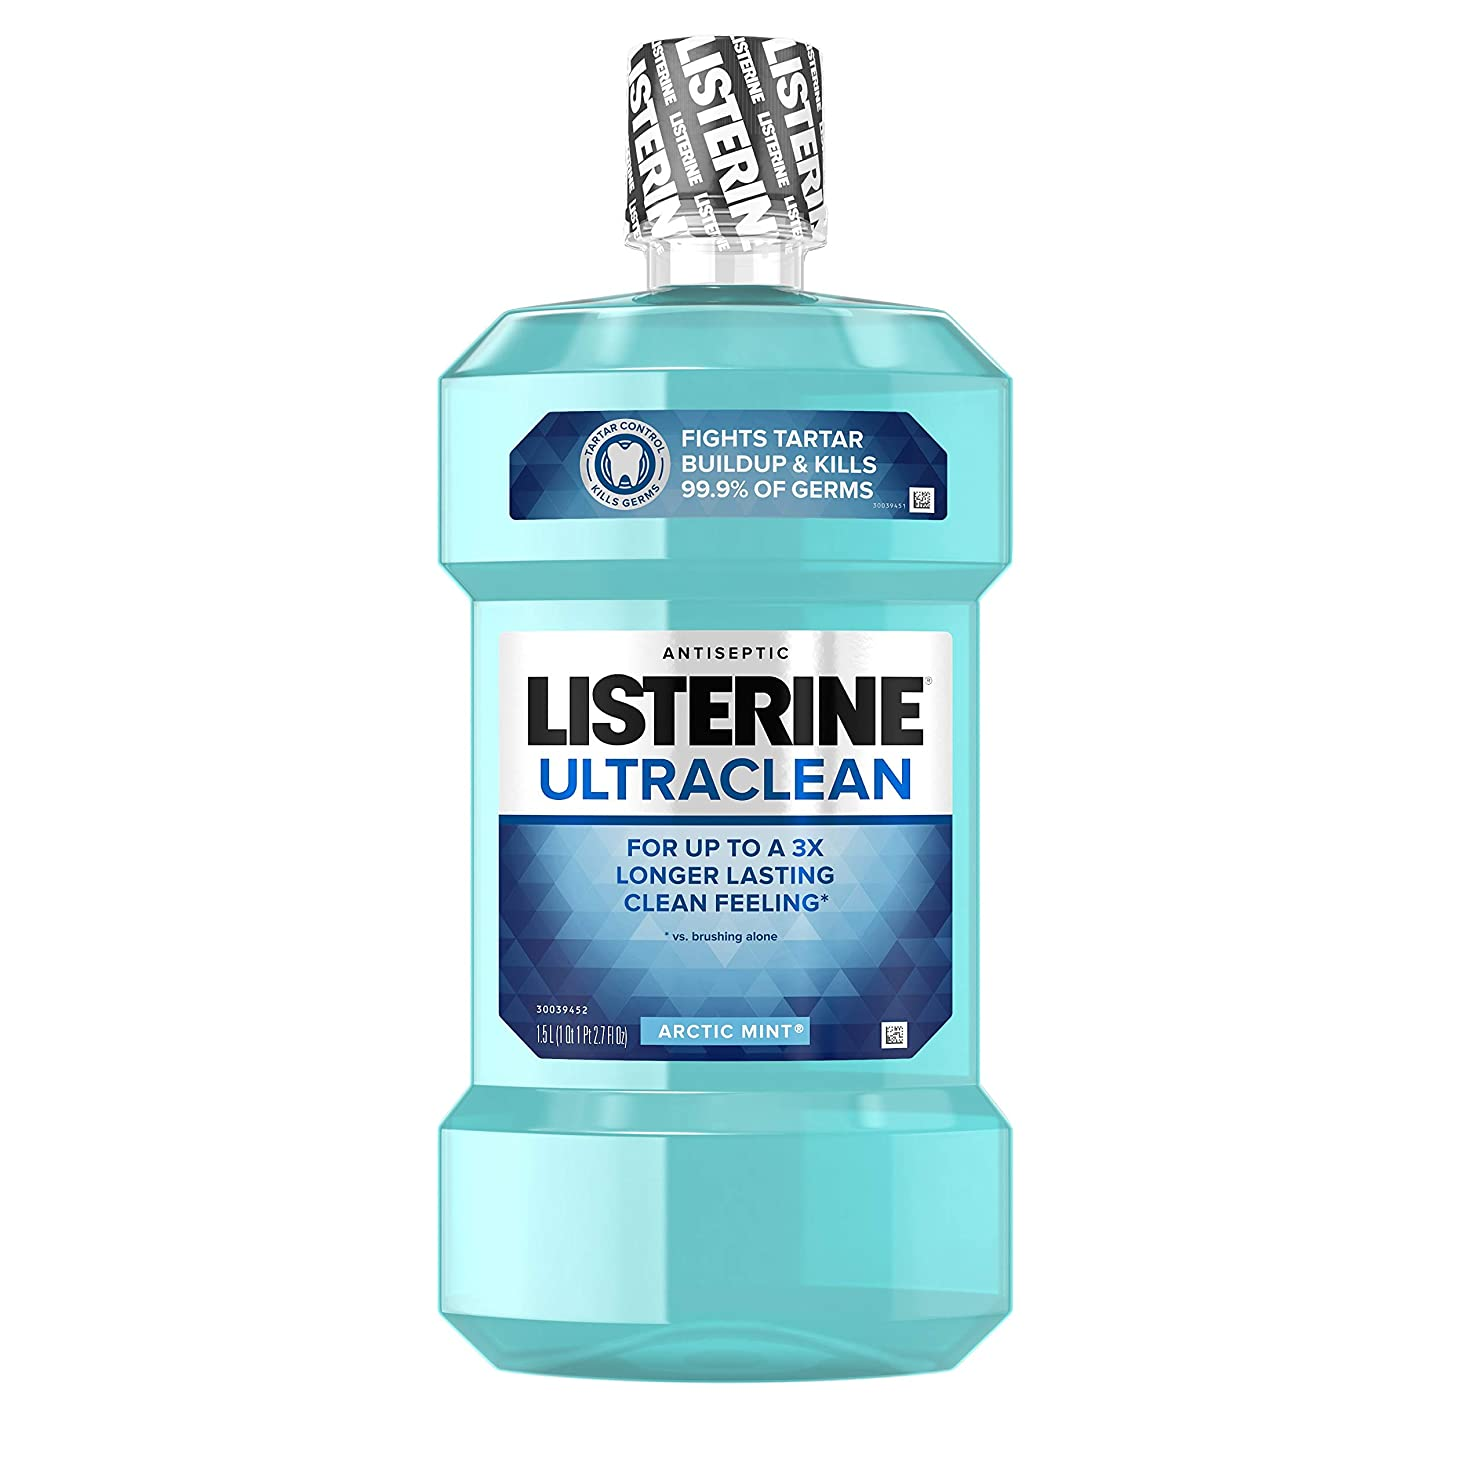 バーマド間欠世界記録のギネスブックListerine UltraClean Mouthwash, Arctic Mint,1.5 Liters by Listerine